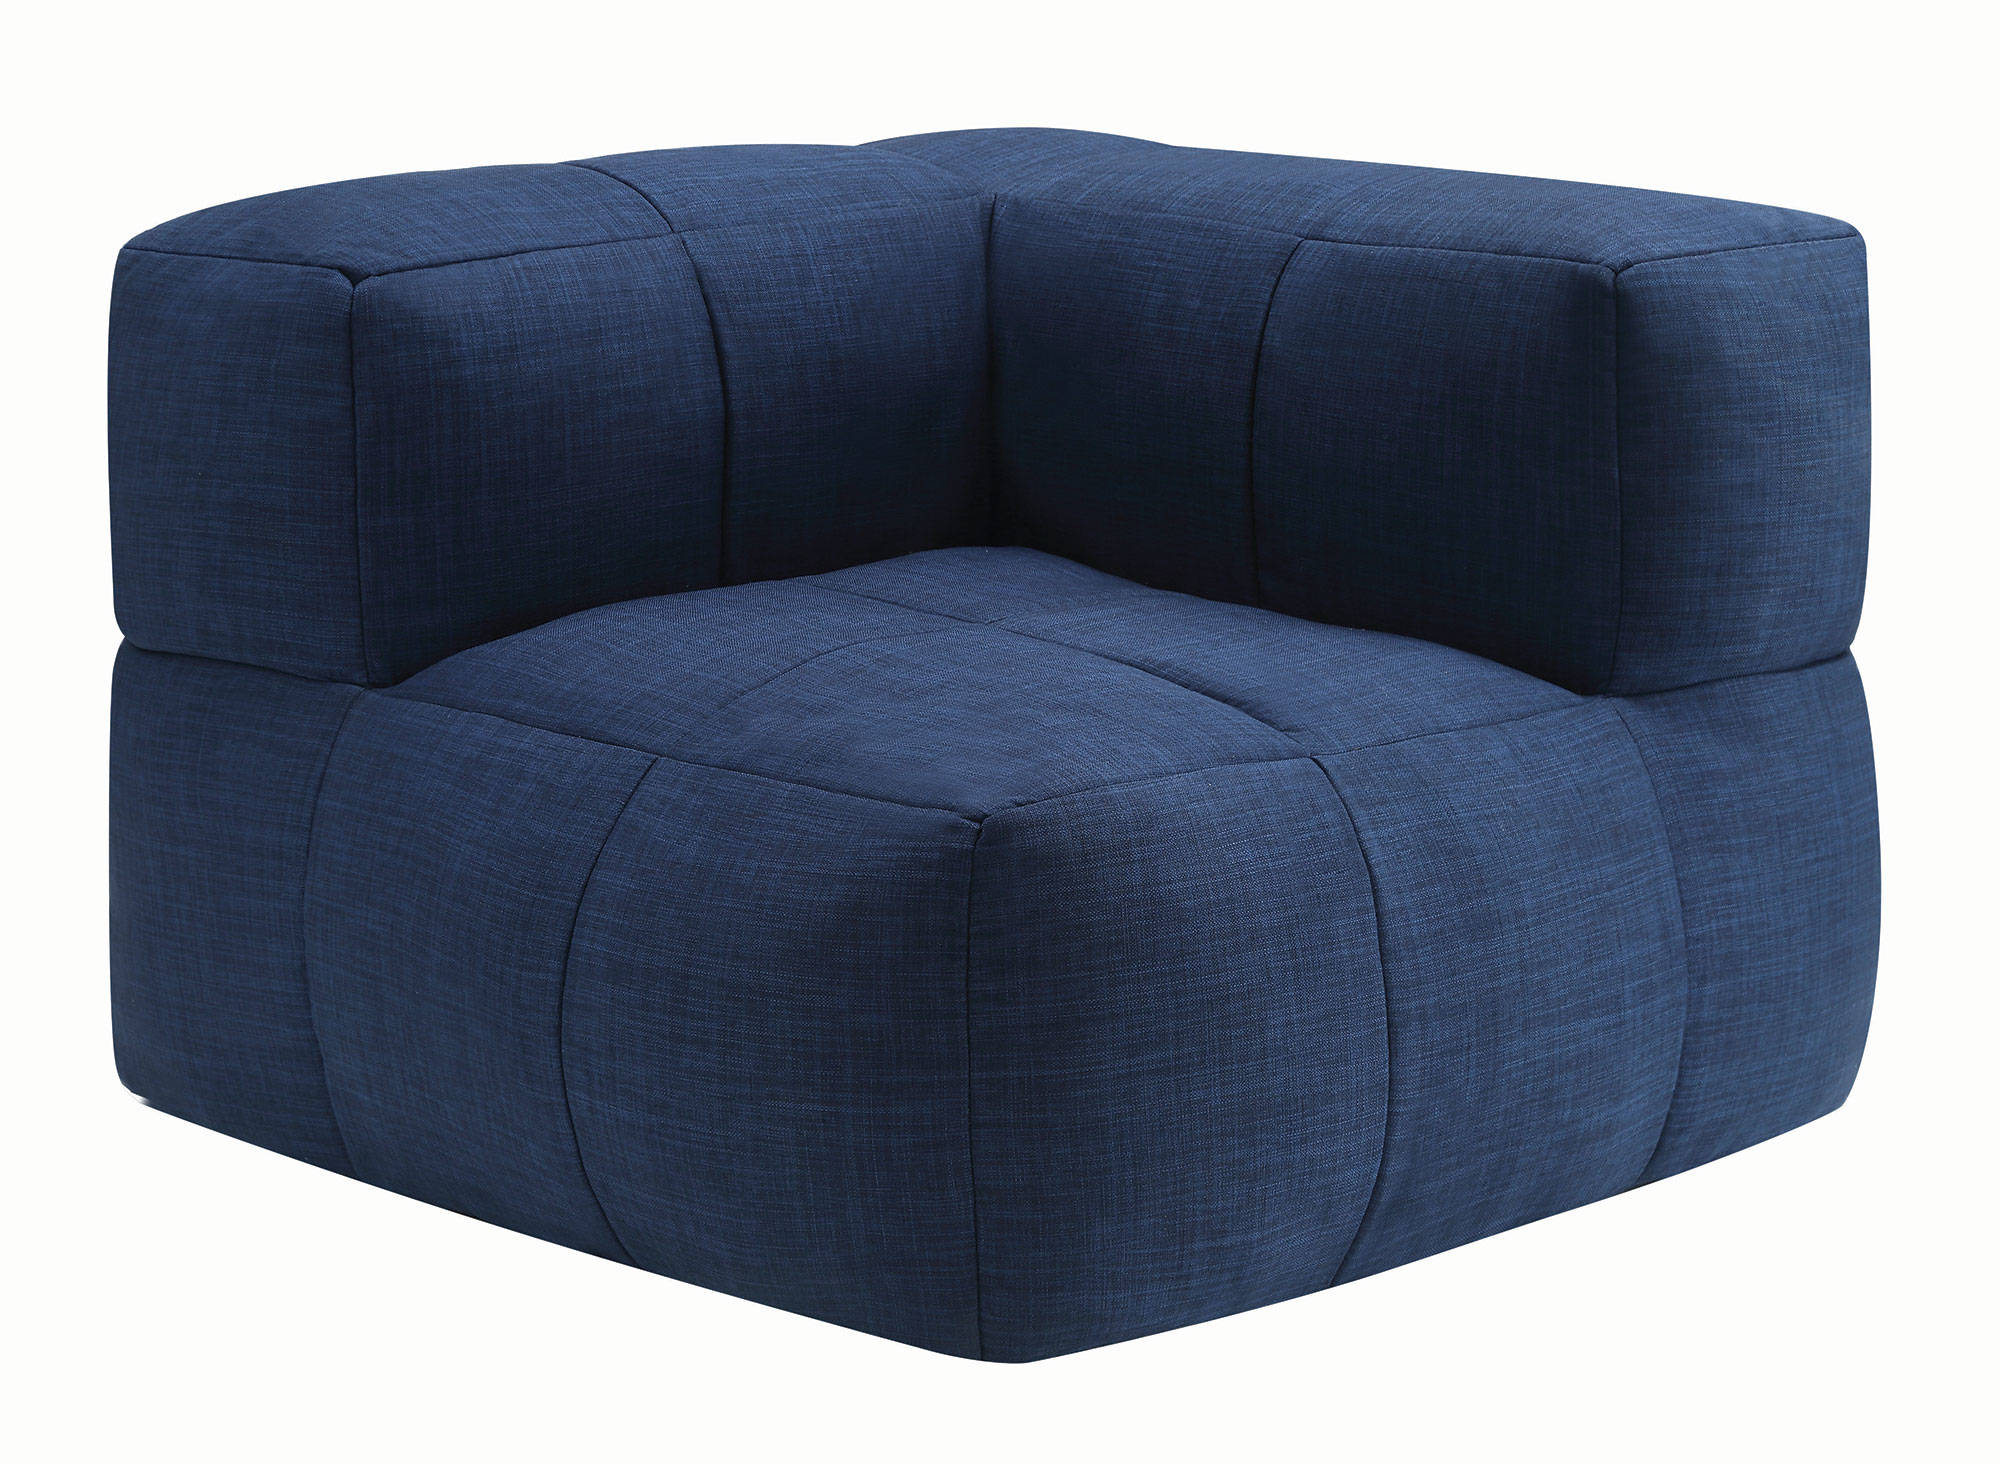 Lazy Life Casual Navy Fabric Corner Bean Bag The Classy Home